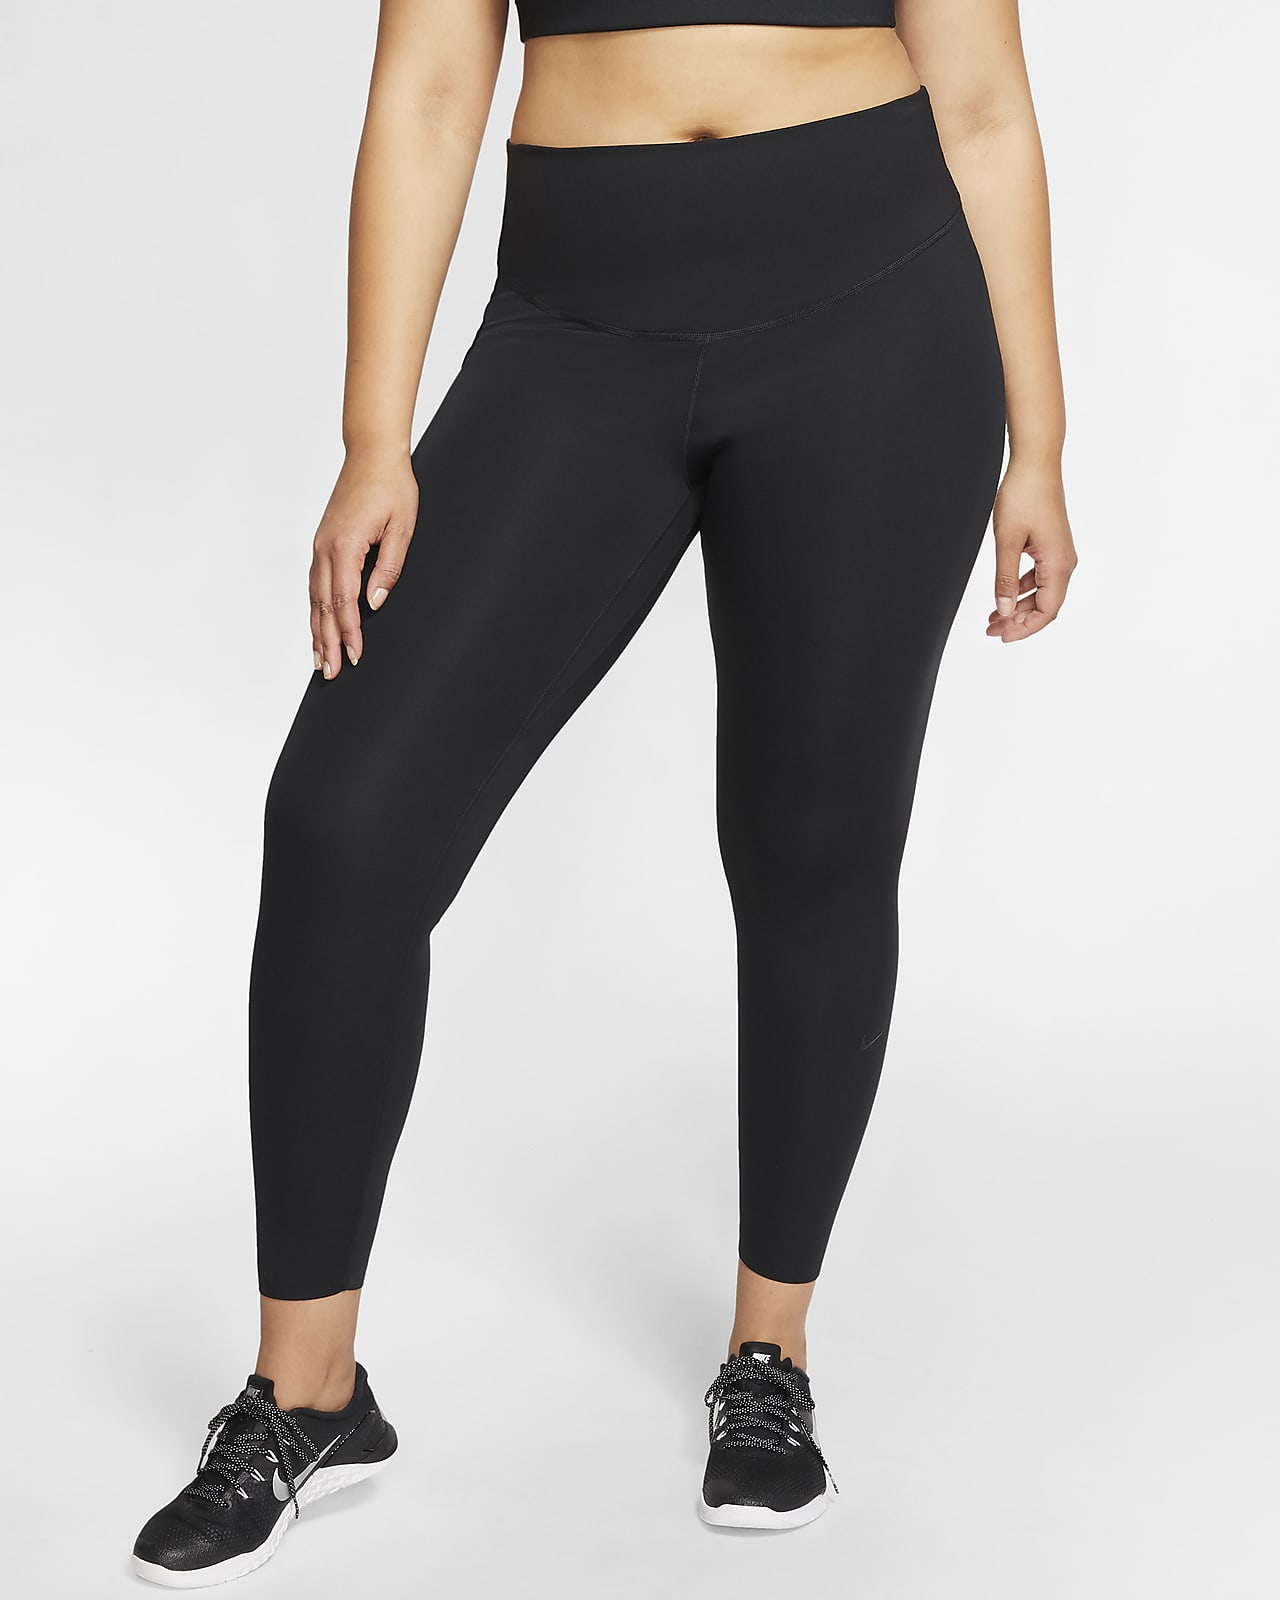 Nike One Luxe Women's Mid-Rise Leggings (Plus Size)